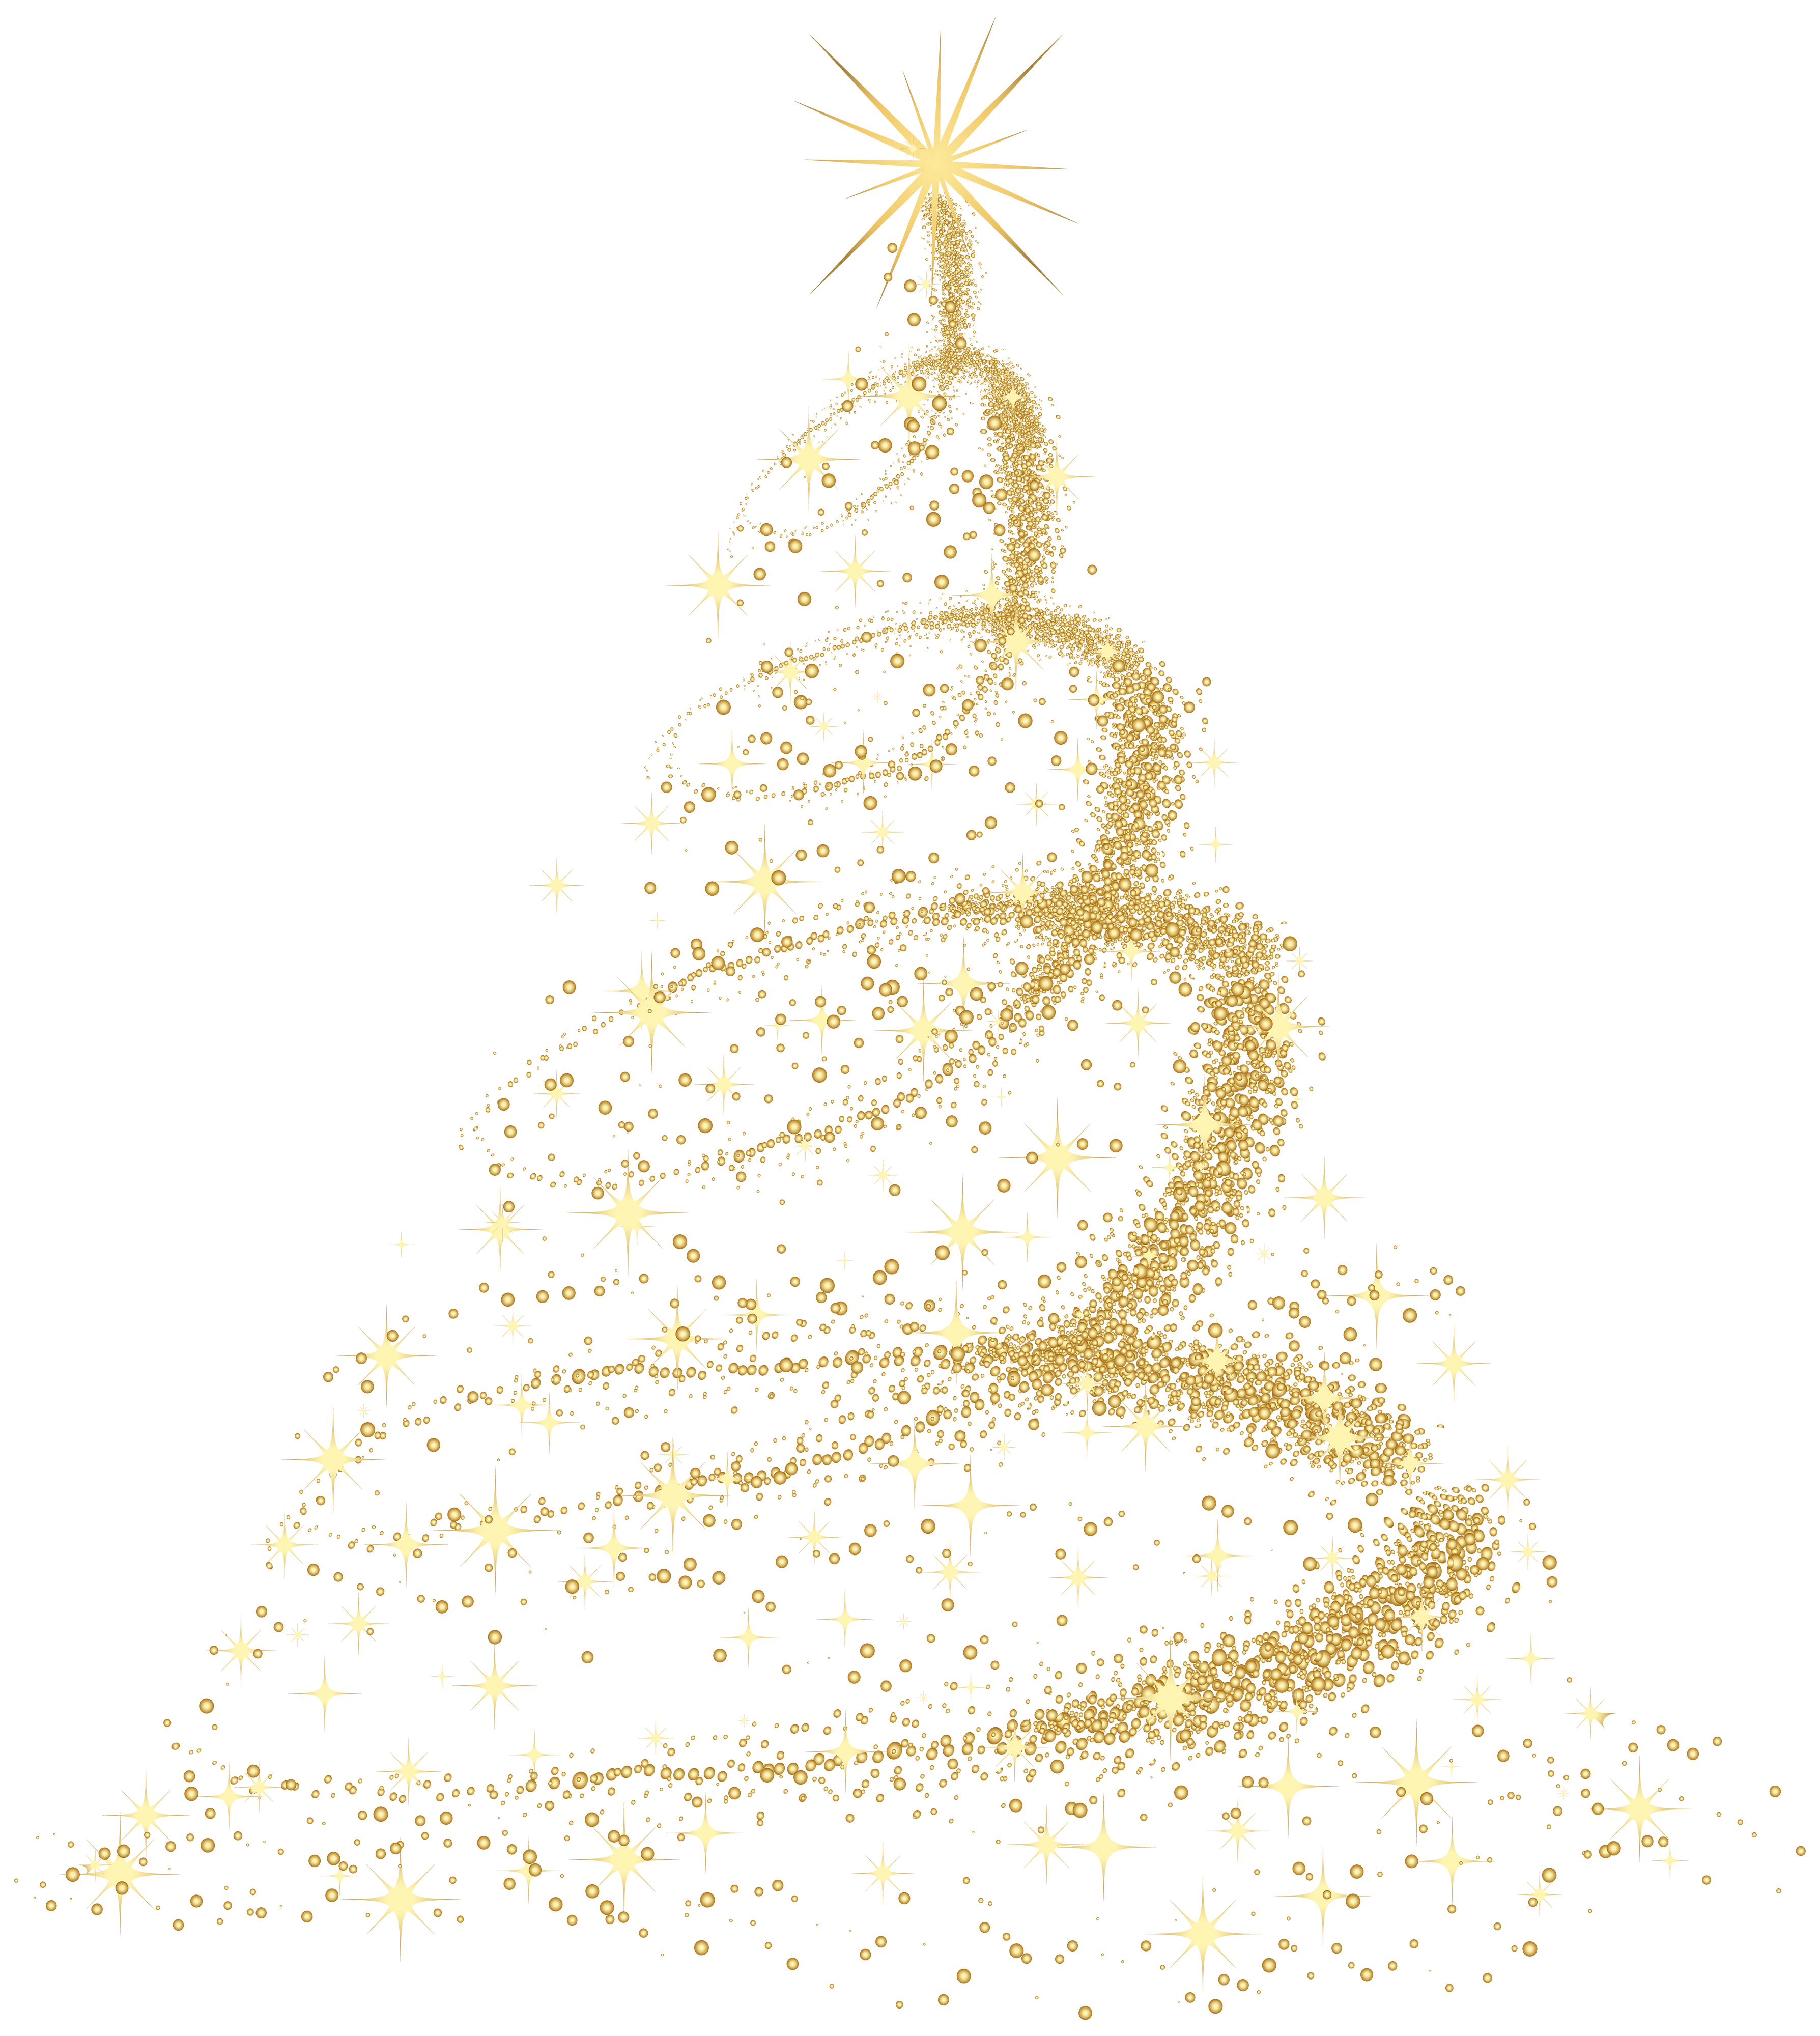 Family christmas tree clipart png Deco Christmas Tree Transparent PNG Clip Art Image | Gallery ... png